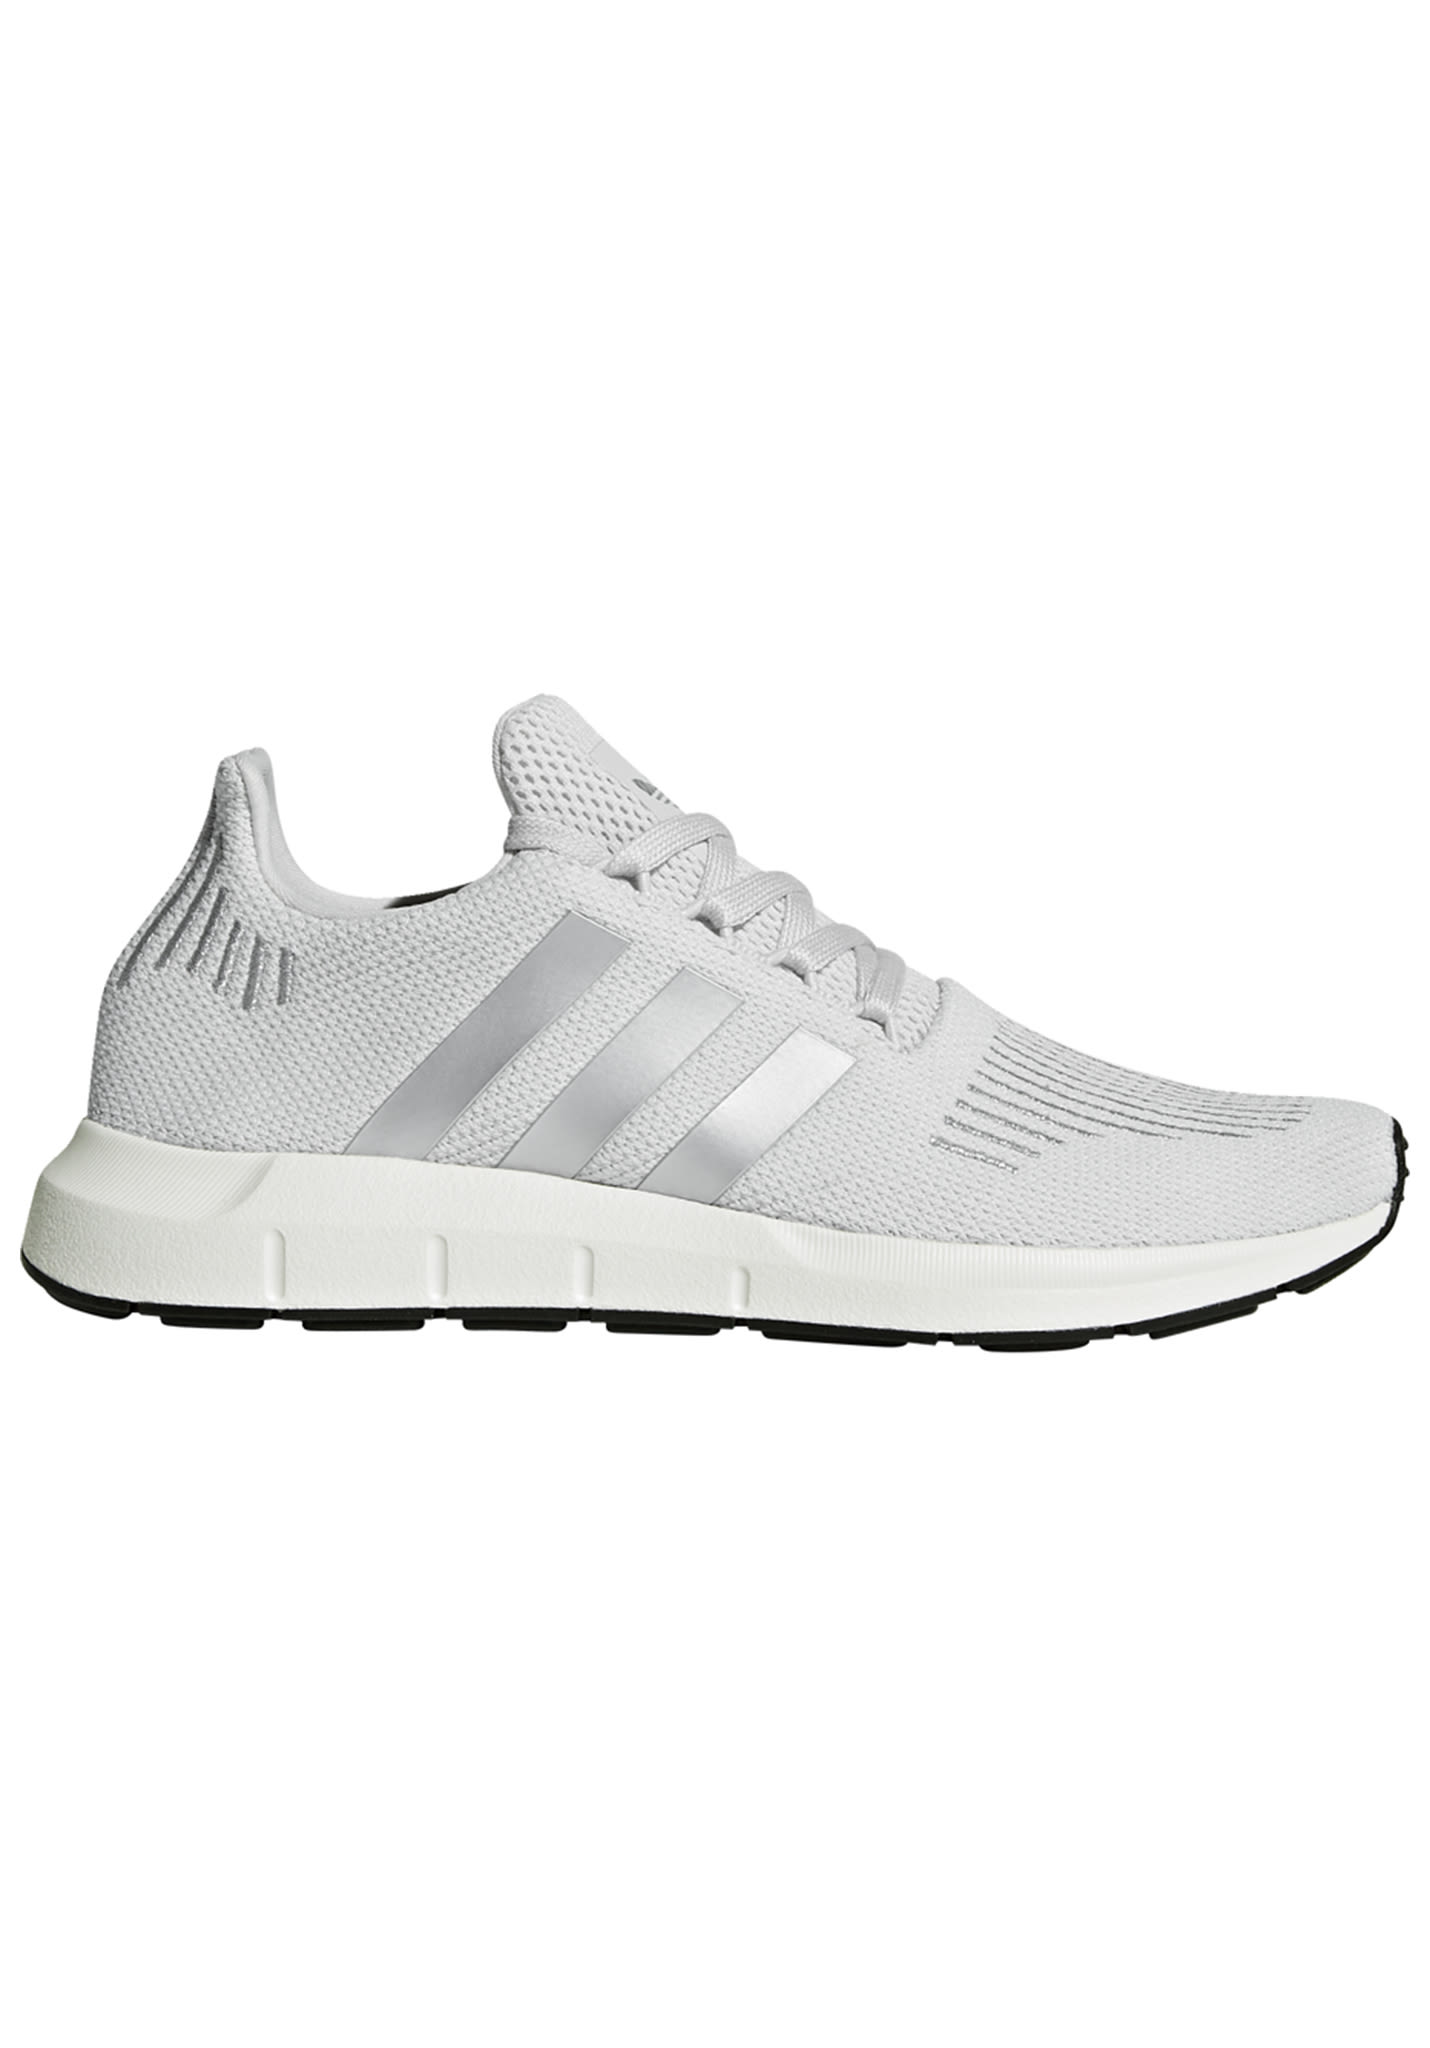 34d86313fee ADIDAS ORIGINALS Swift Run - Sneakers for Women - Grey - Planet Sports